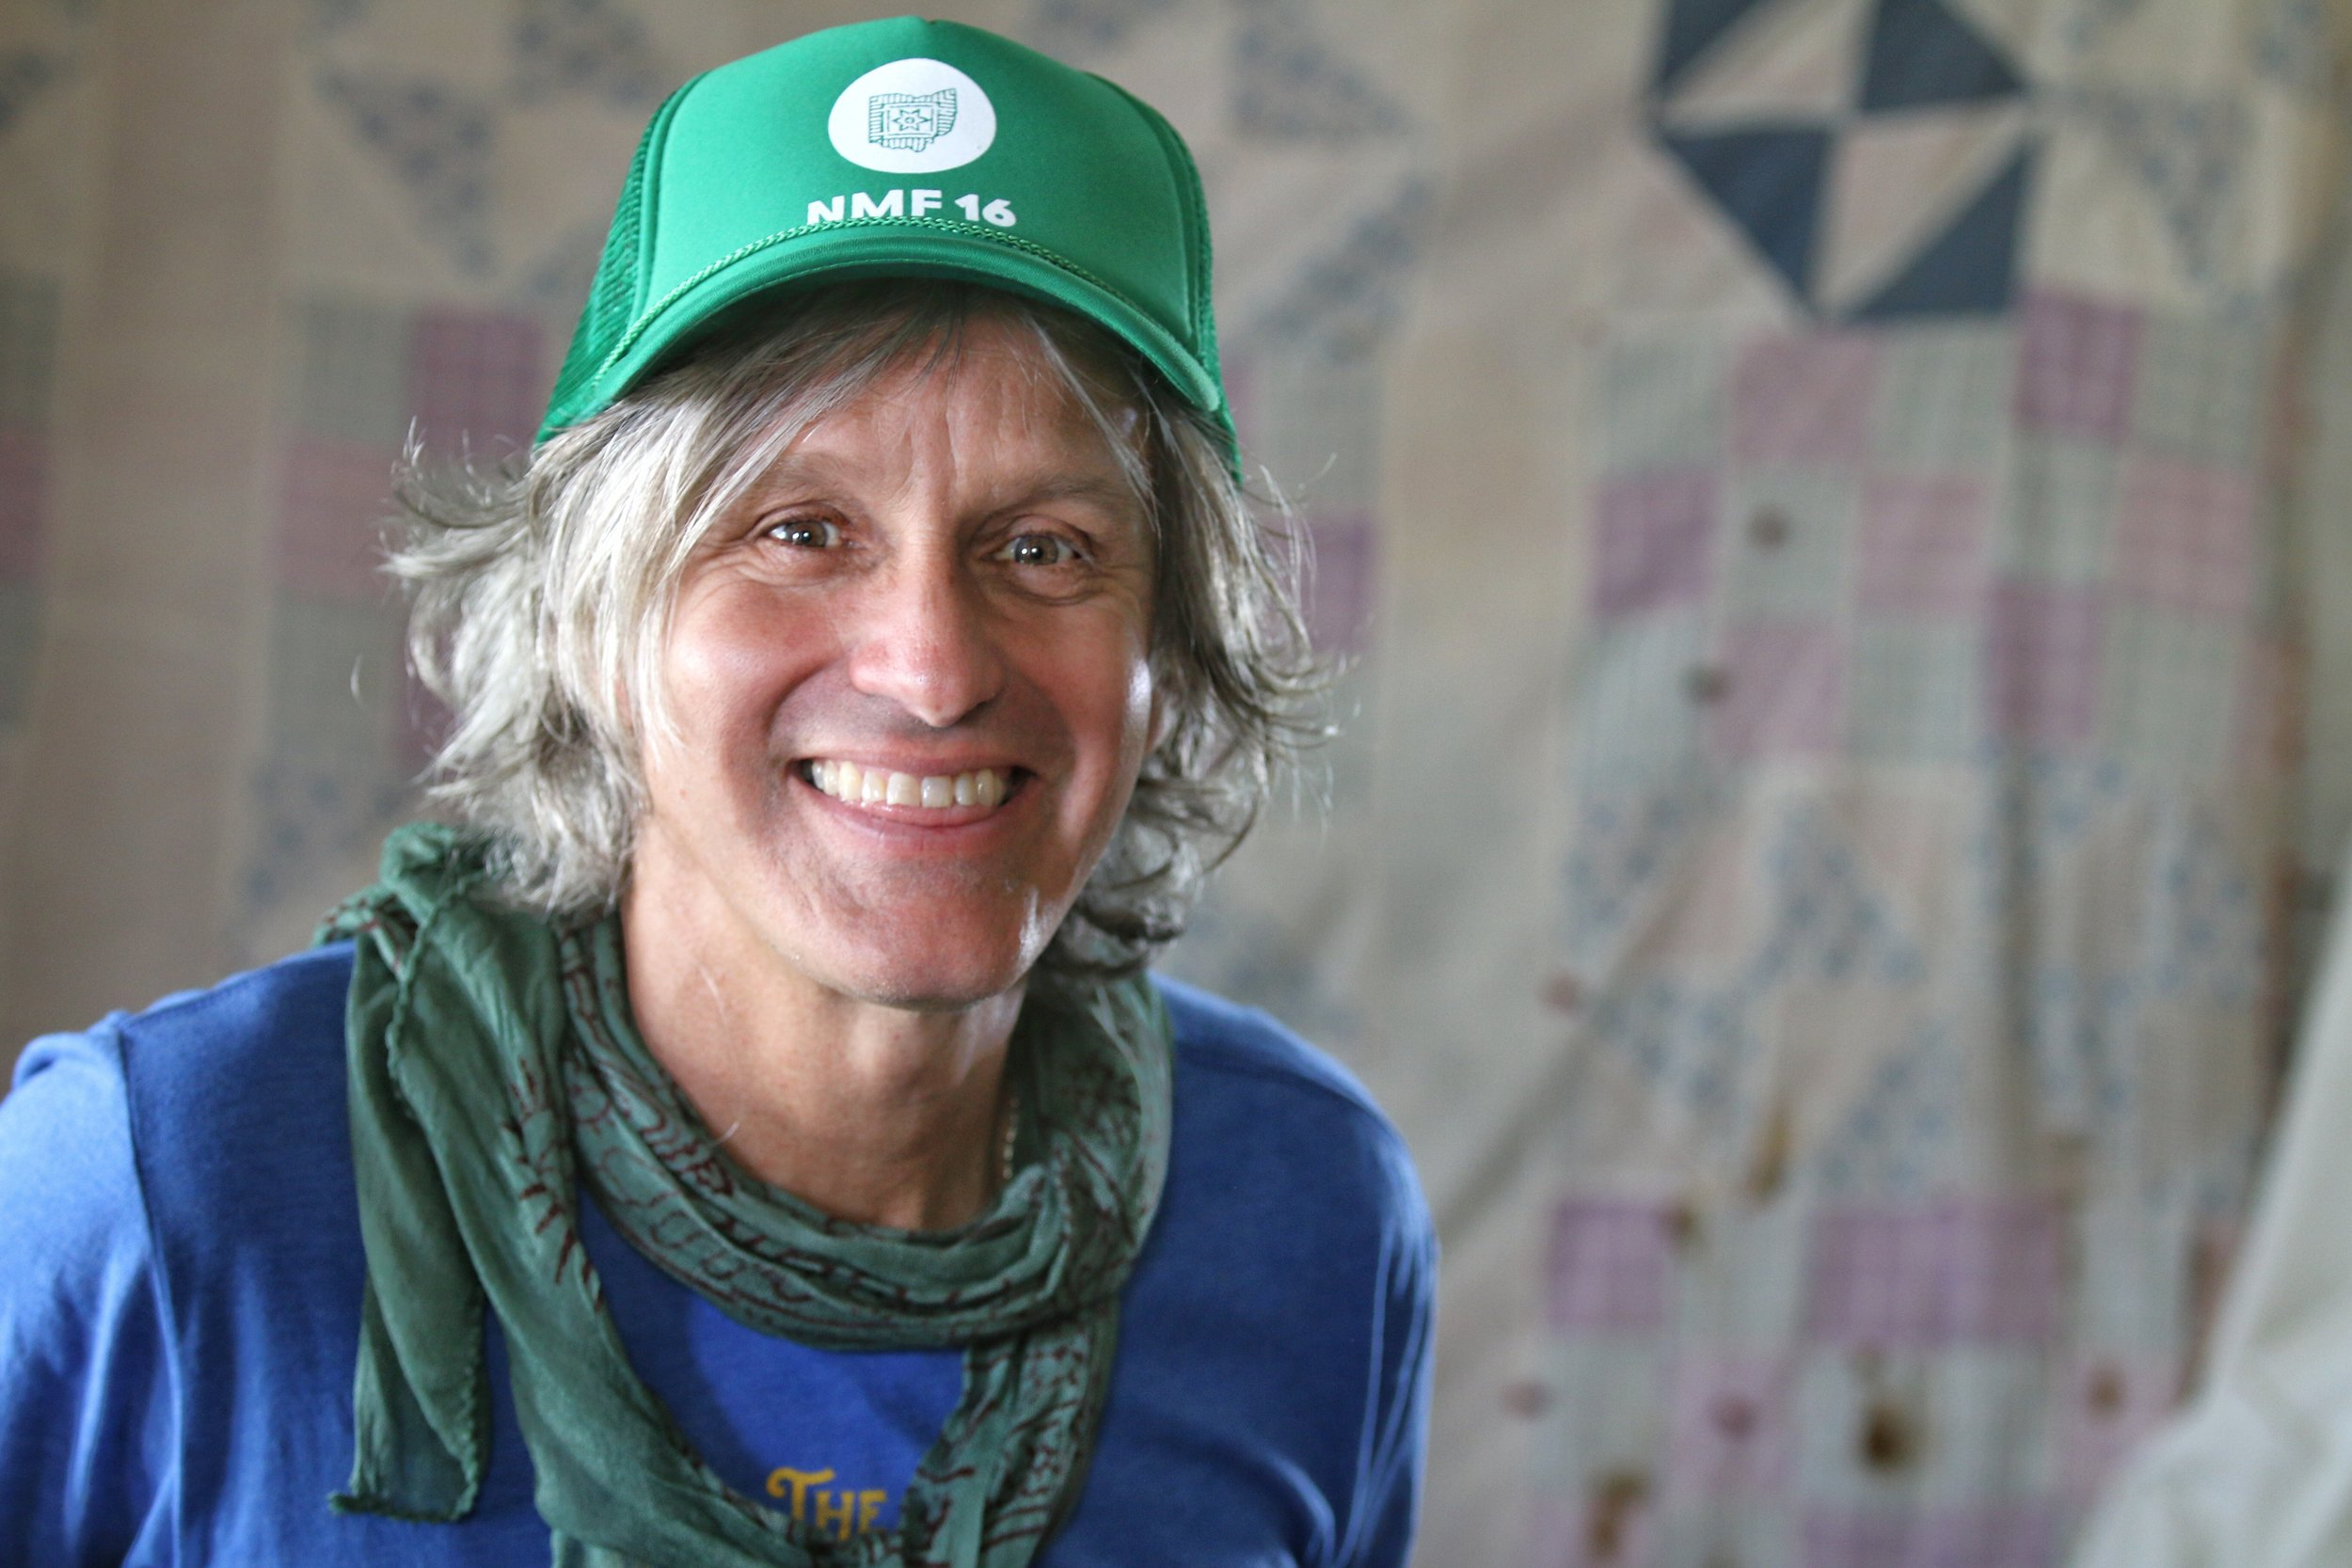 Nelsonville welcomes the return of  Steve Poltz  and his amazing energy, tomorrow night at  Stuart's Opera House . Portrait by  Chad Cochran .